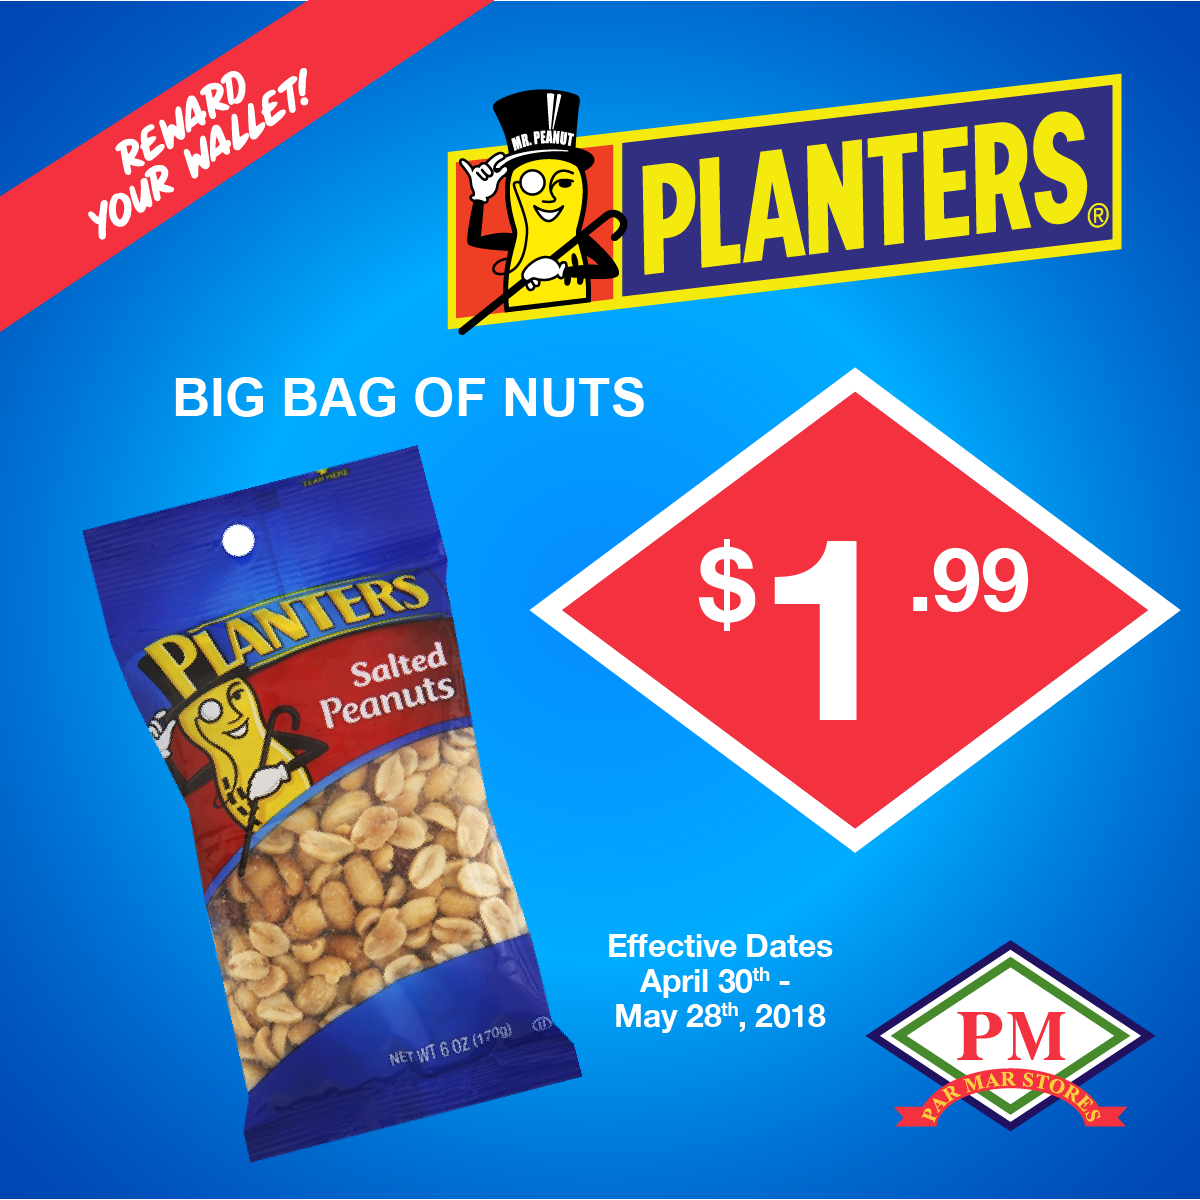 Planters big bag of nuts